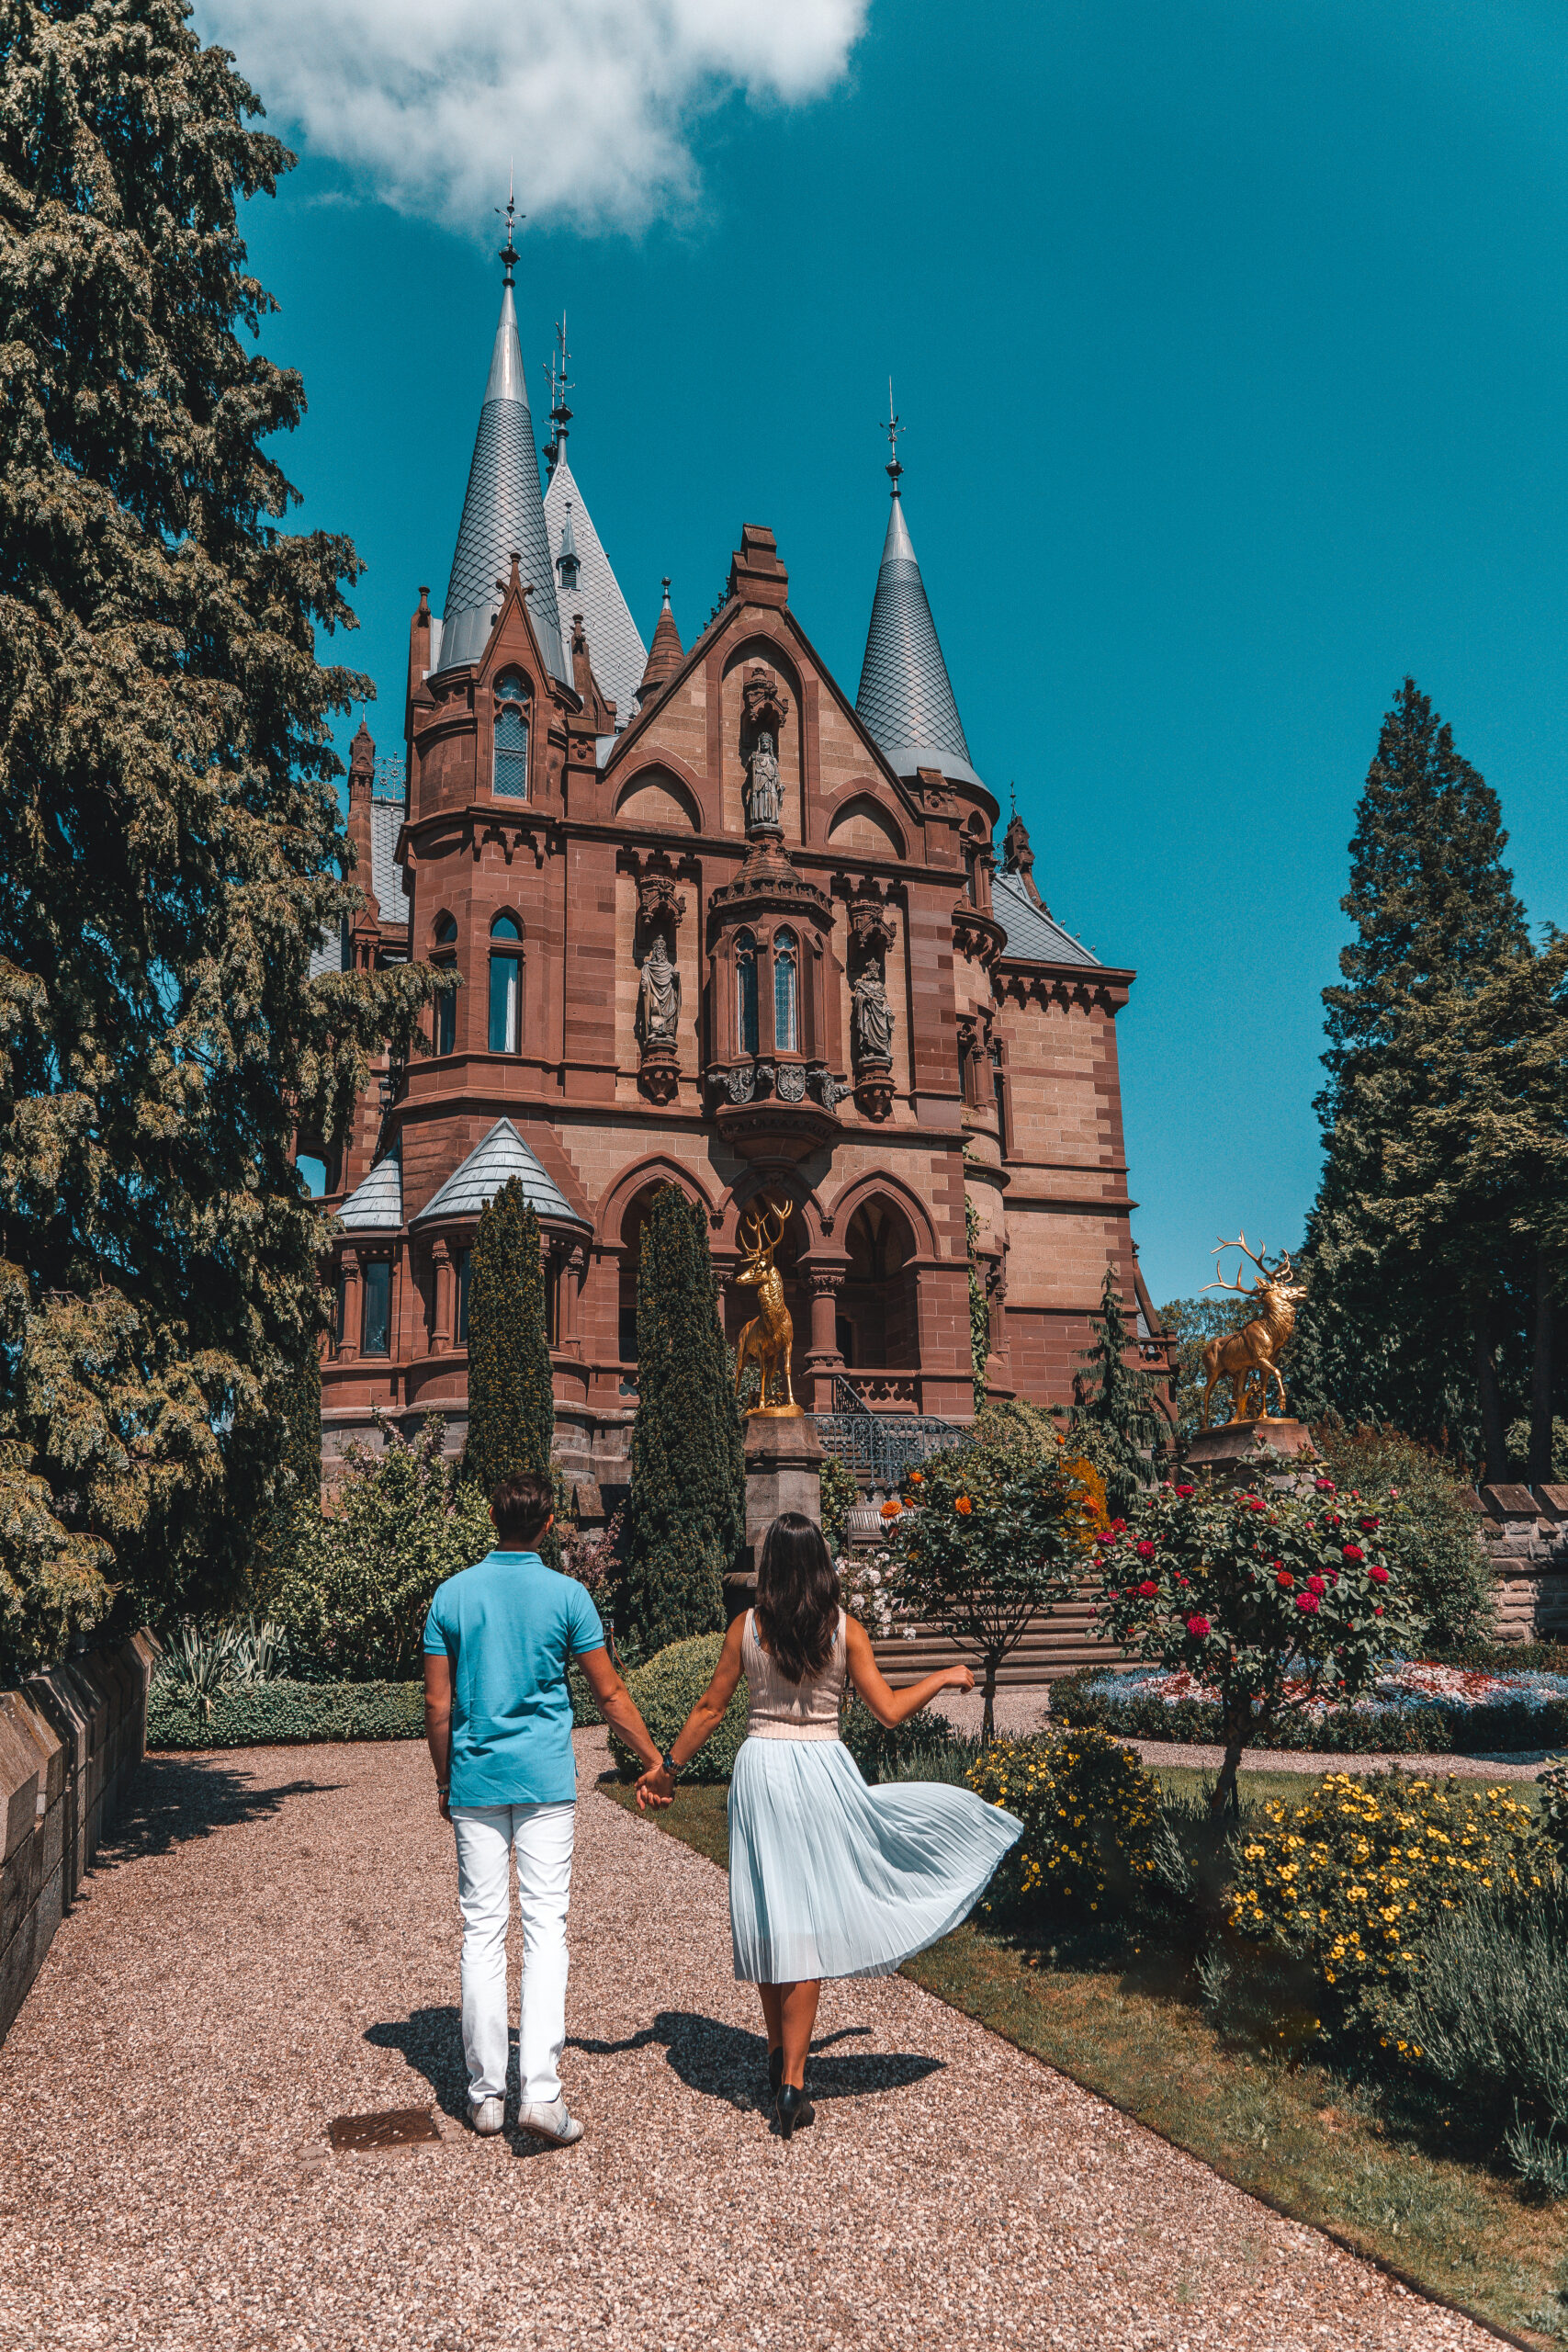 Drachenburg Castle | Guide by Tabitha & Florian